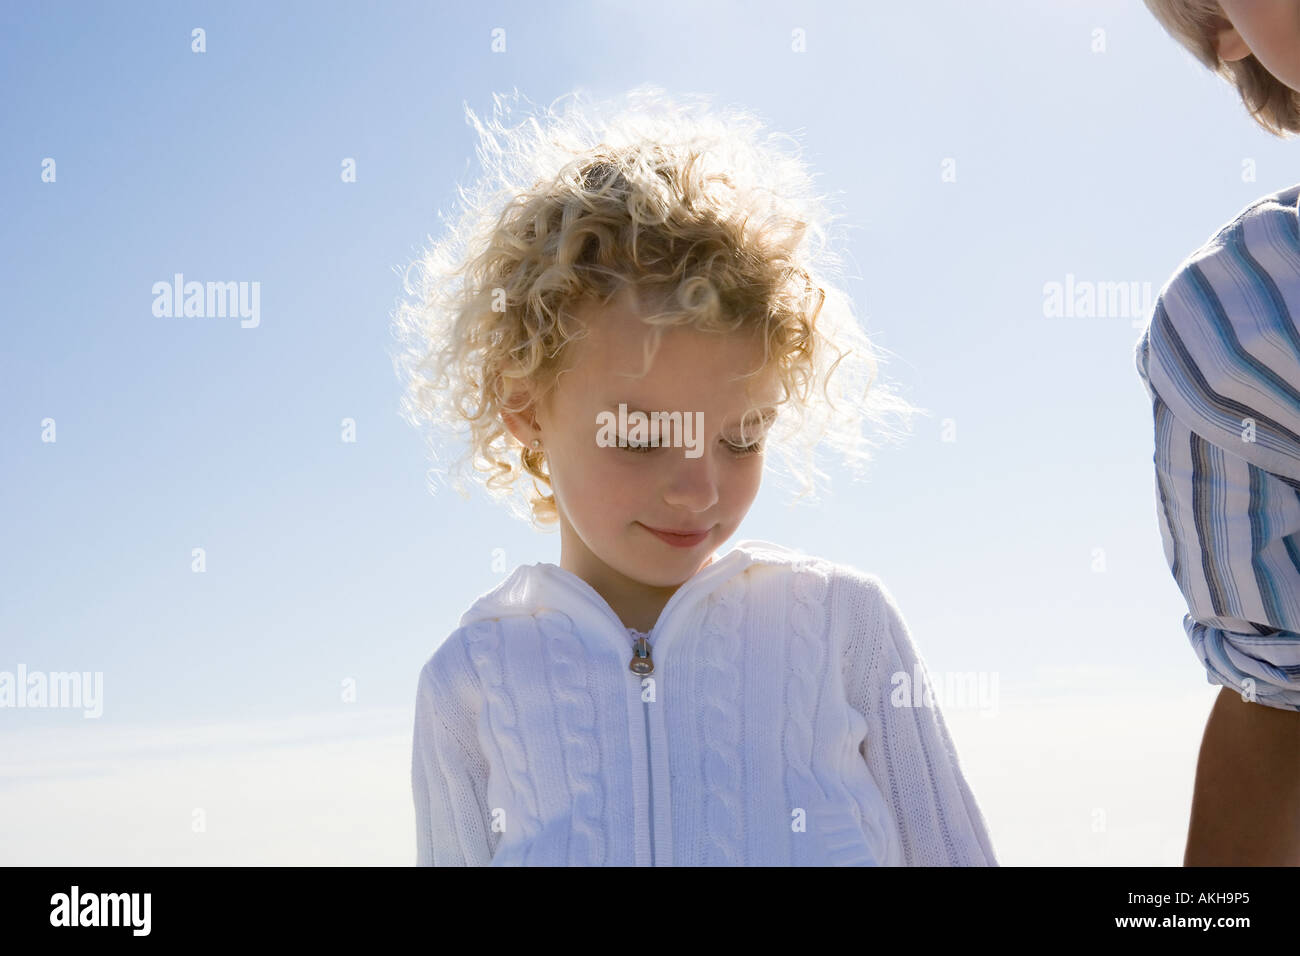 Girl and boy against blue sky - Stock Image